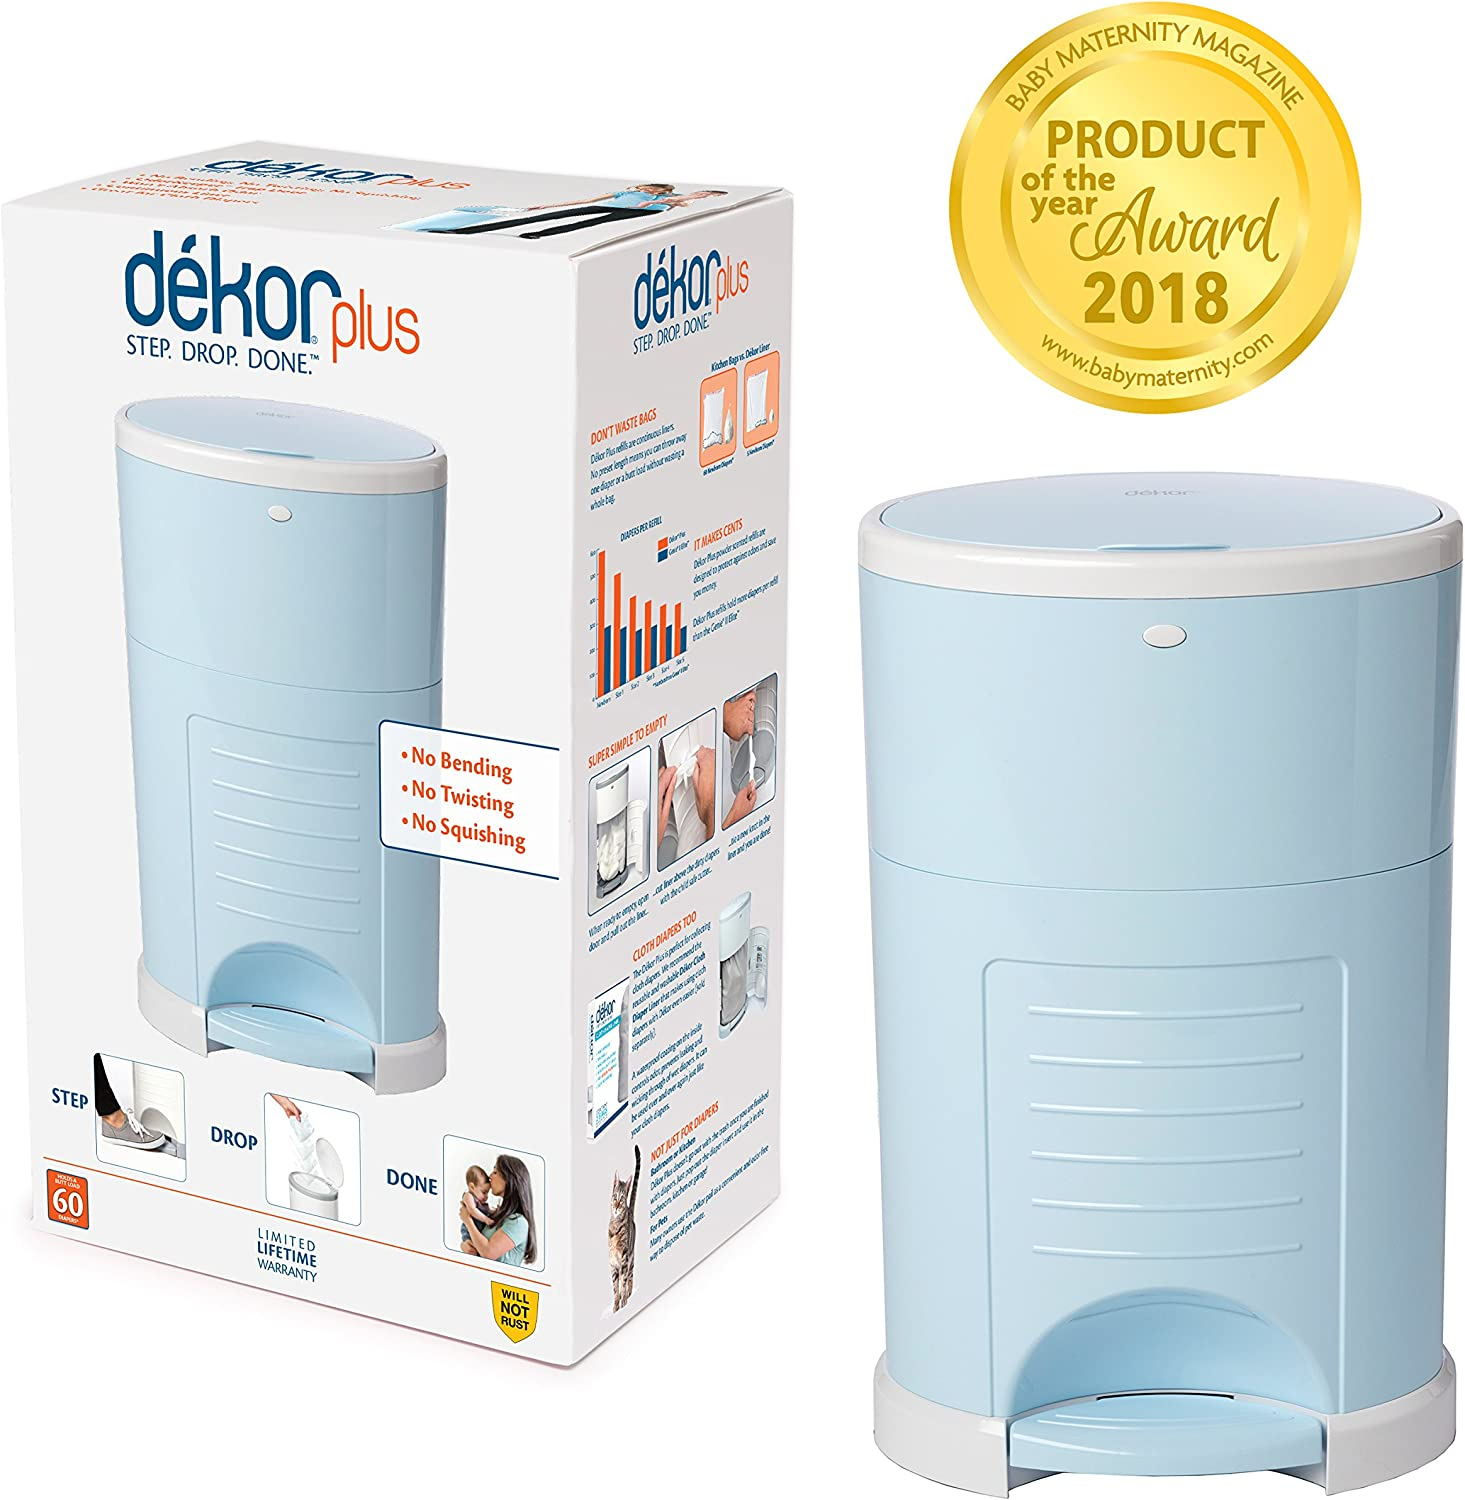 Easiest to Use Just Step Doesn/'t Absorb Odors Done 20 Second Bag Change Soft Blue Drop Dekor Plus Hands-Free Diaper Pail Most Economical Refill System |Great for Cloth Diapers